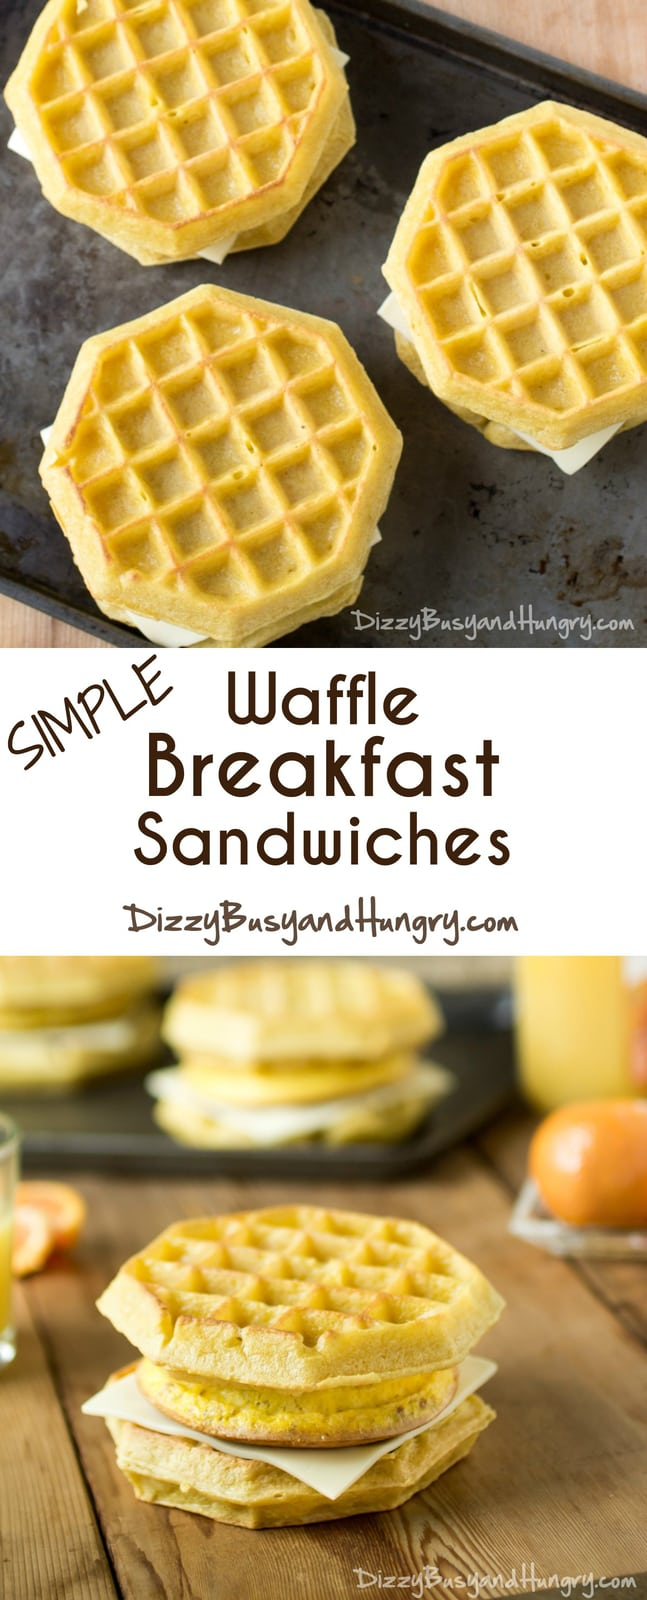 Simple Waffle Breakfast Sandwiches   DizzyBusyandHungry.com - Easy to assemble on busy mornings and tastier than frozen versions!